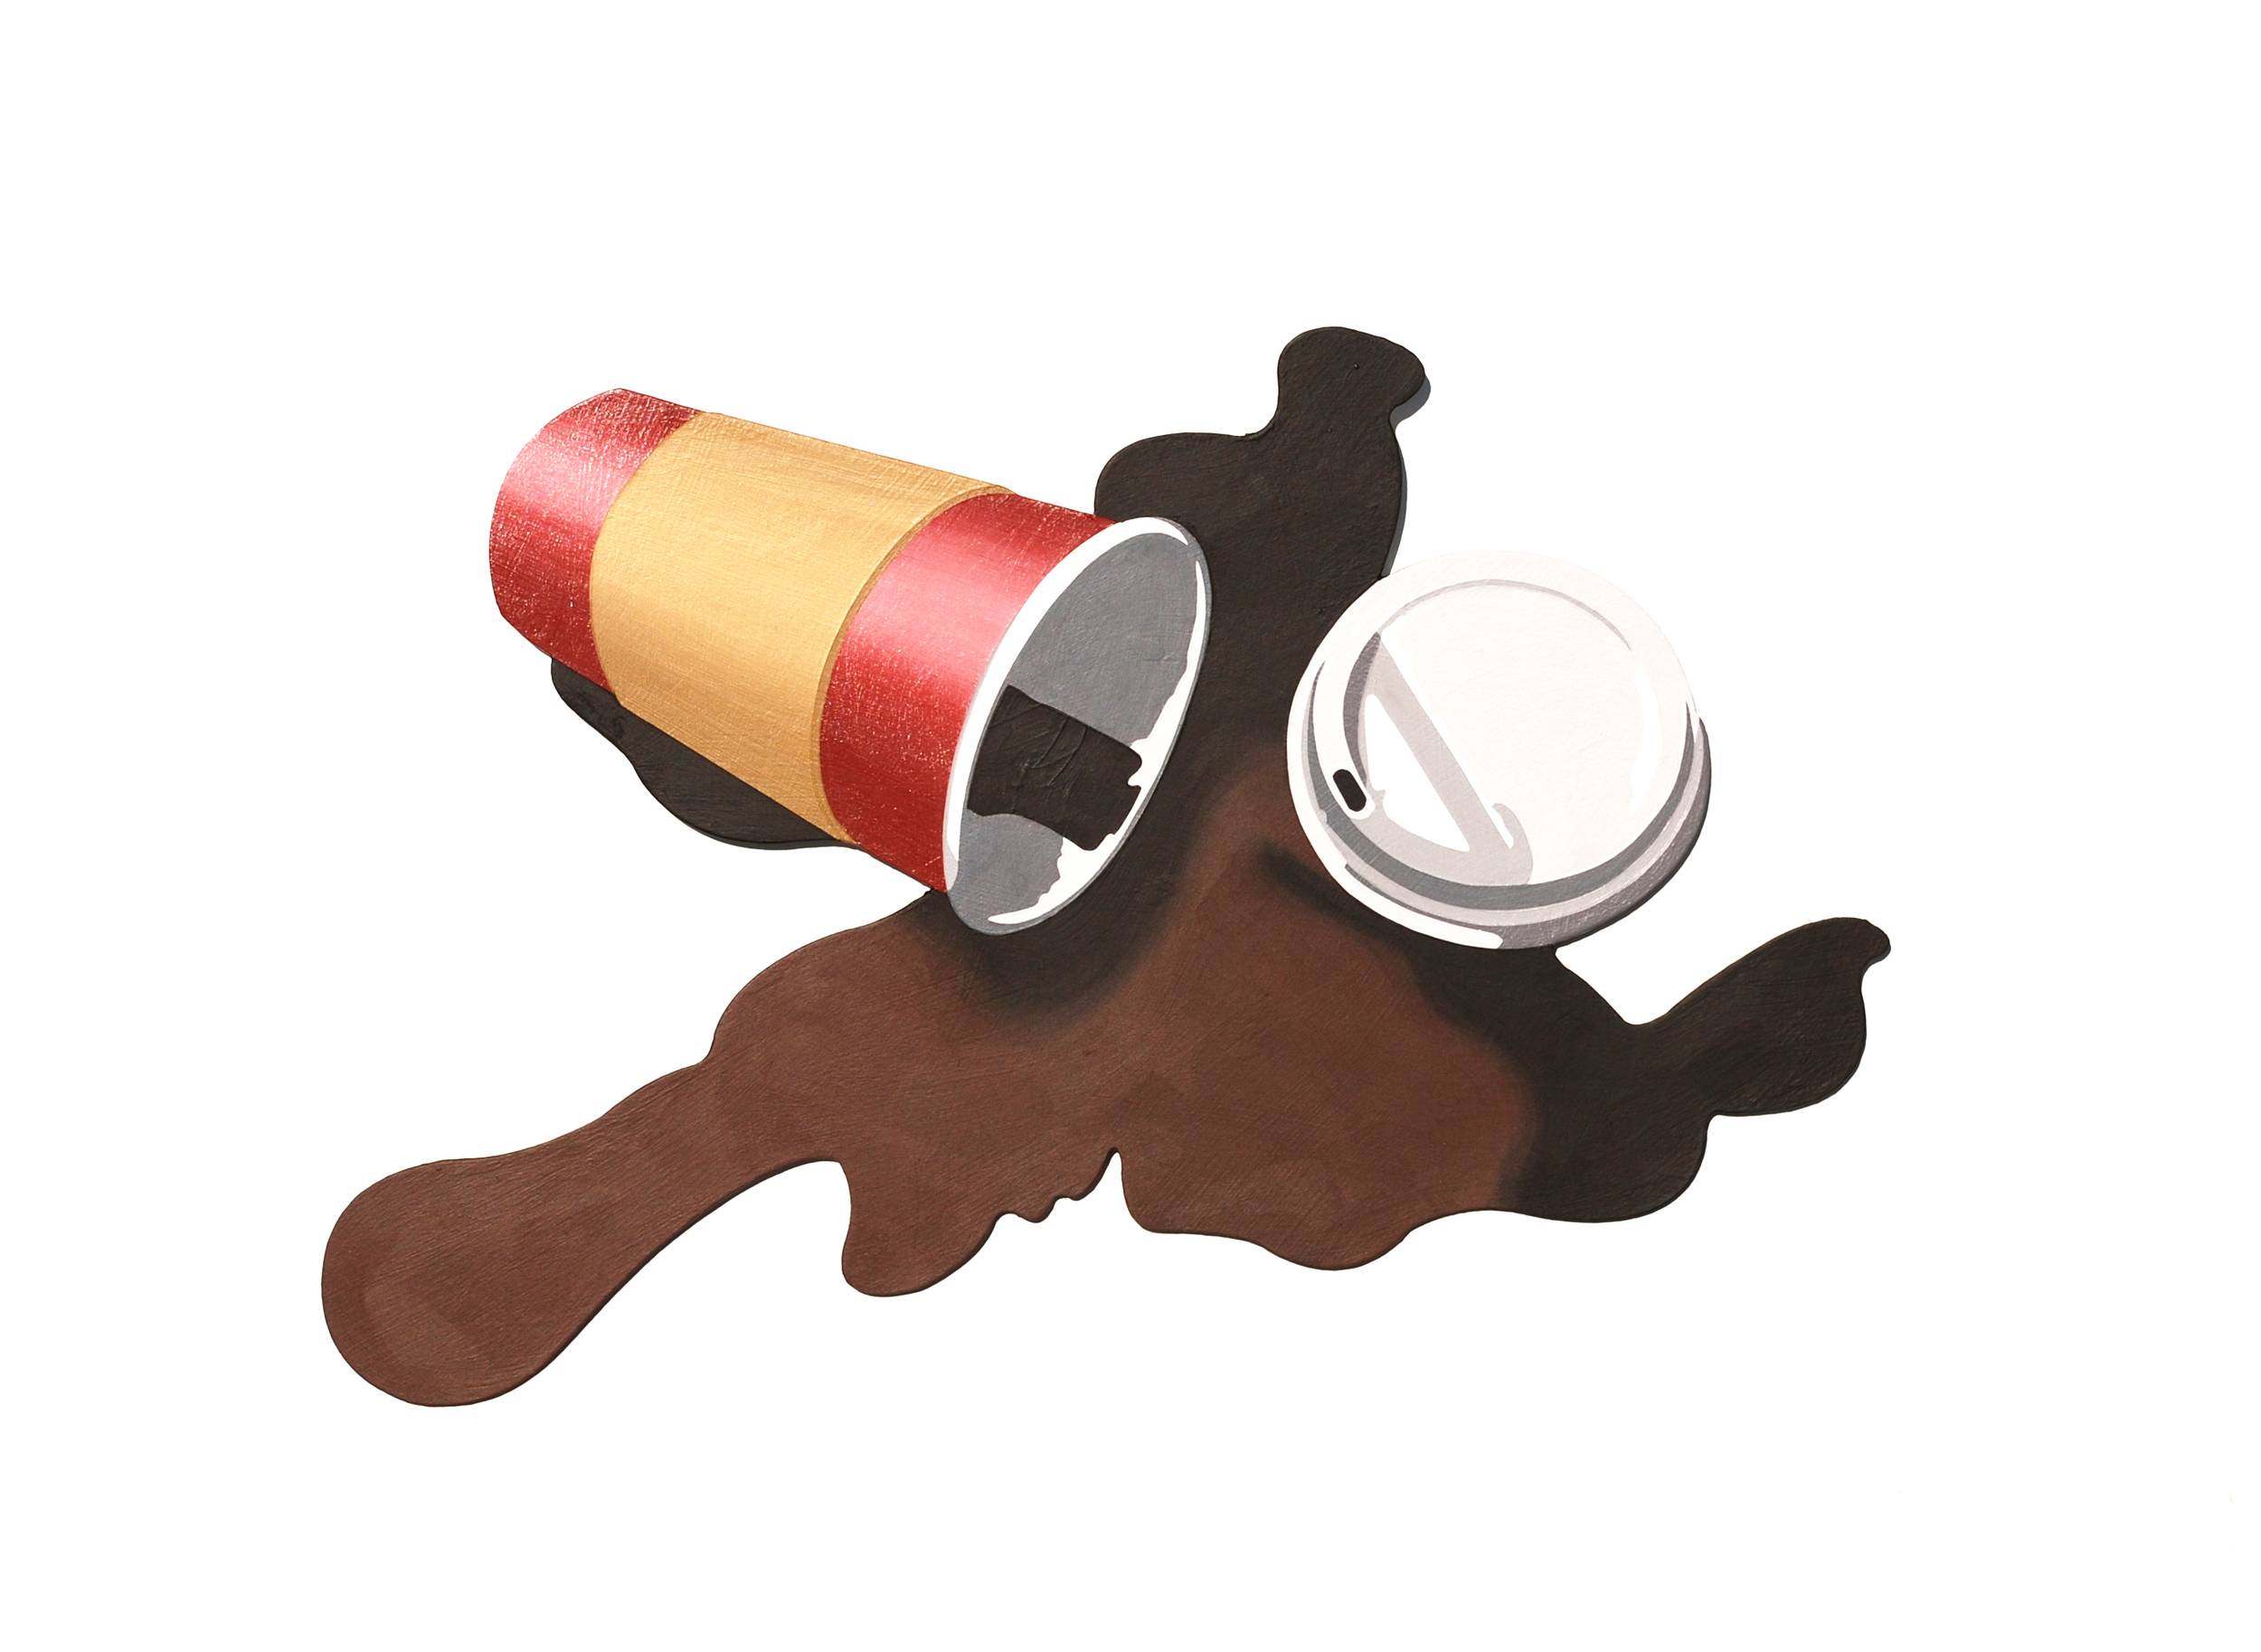 To-Go Coffee Spill (First World Problems)